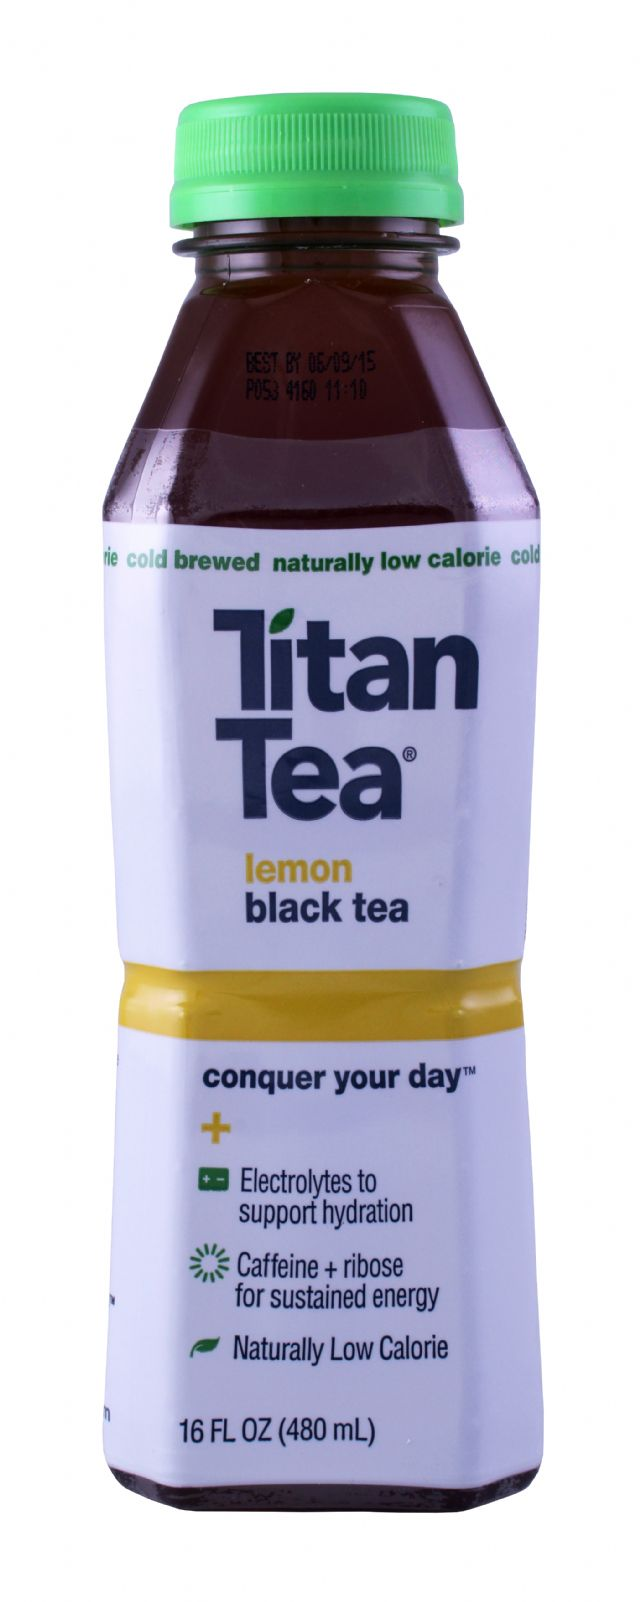 Titan Tea: TitanTea Lemon Front